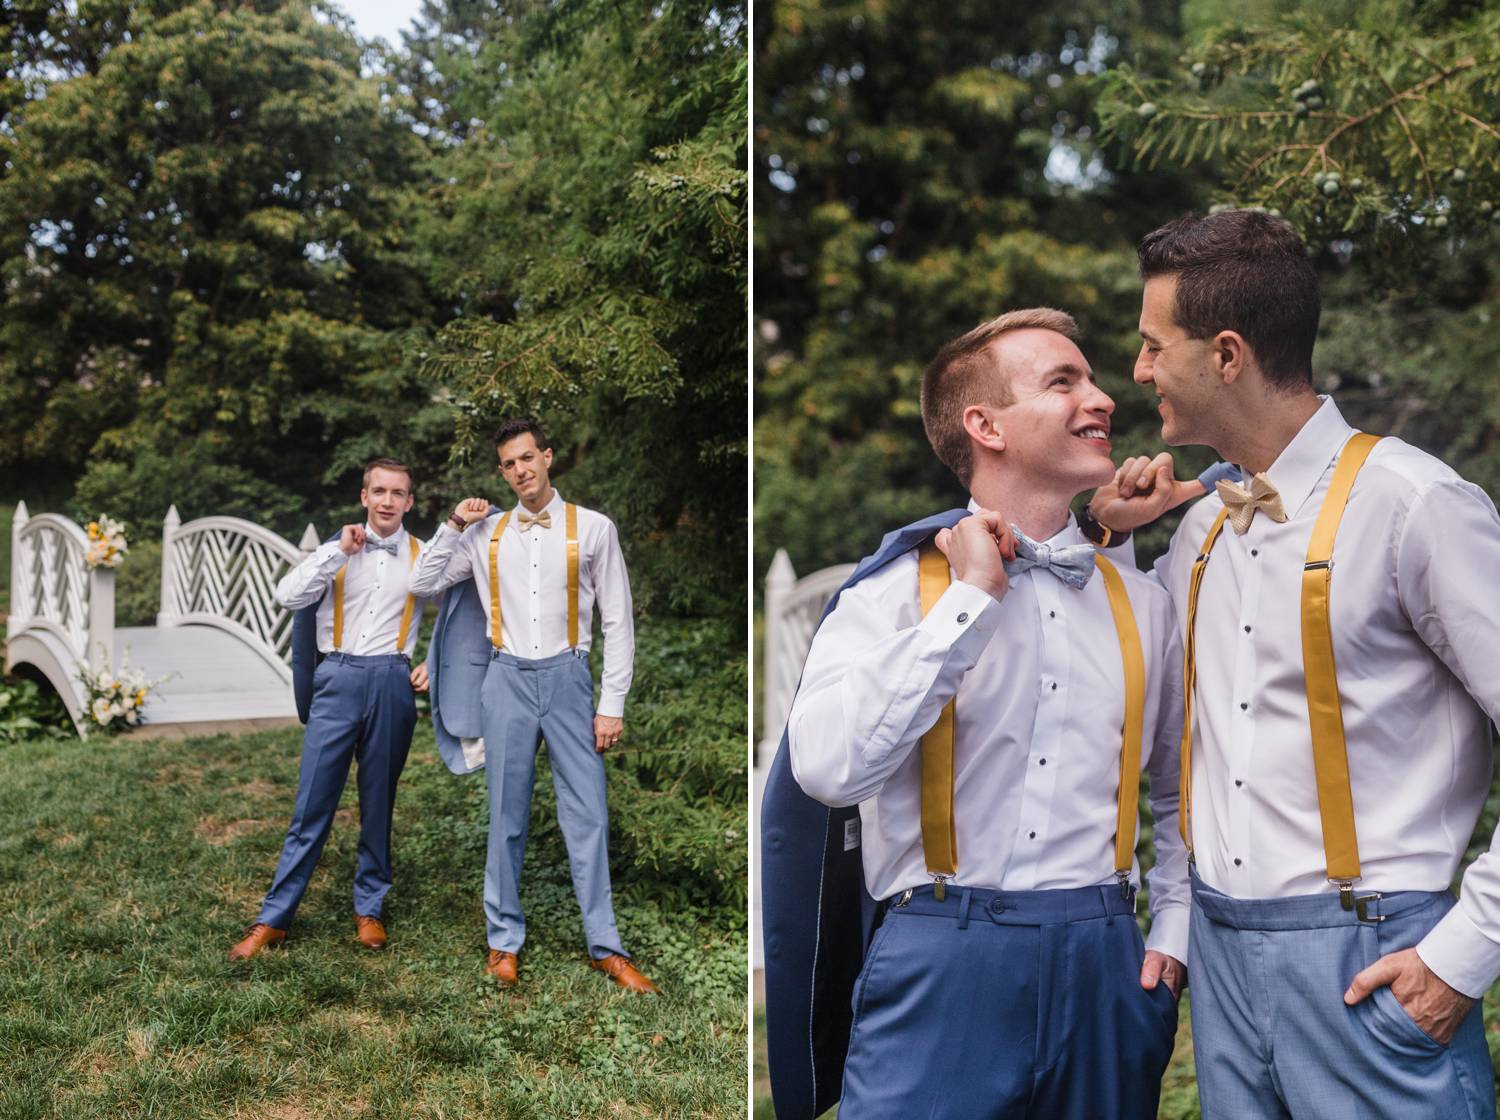 Two grooms hold their suit jackets over their shoulders and pose for a wedding portrait